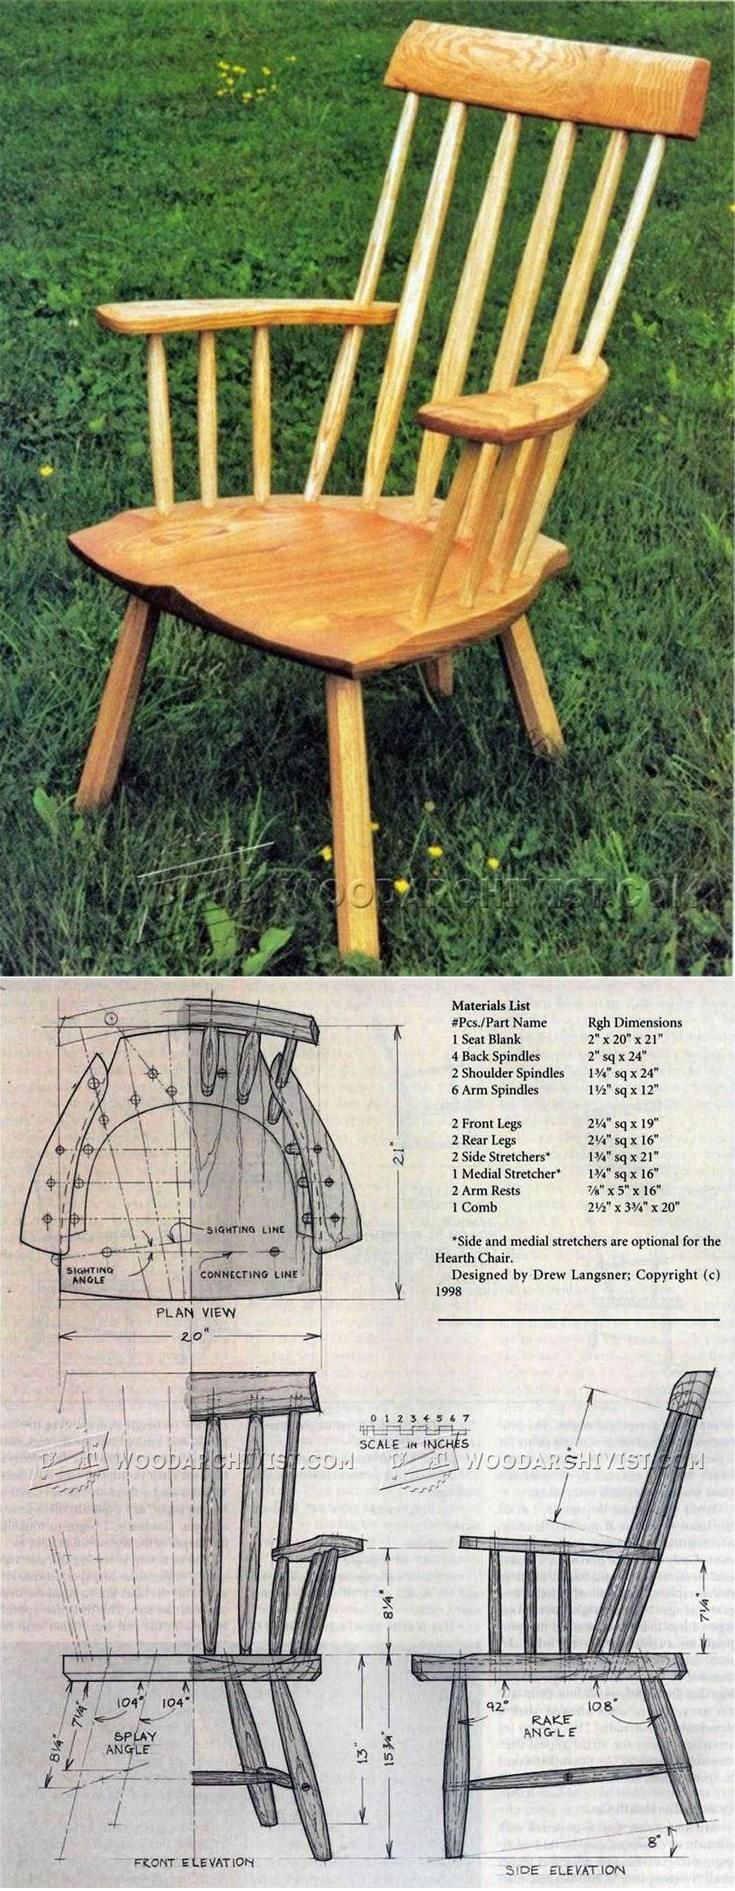 Rustic Windsor Chair Plans - Furniture Plans and Projects | WoodArchivist.com